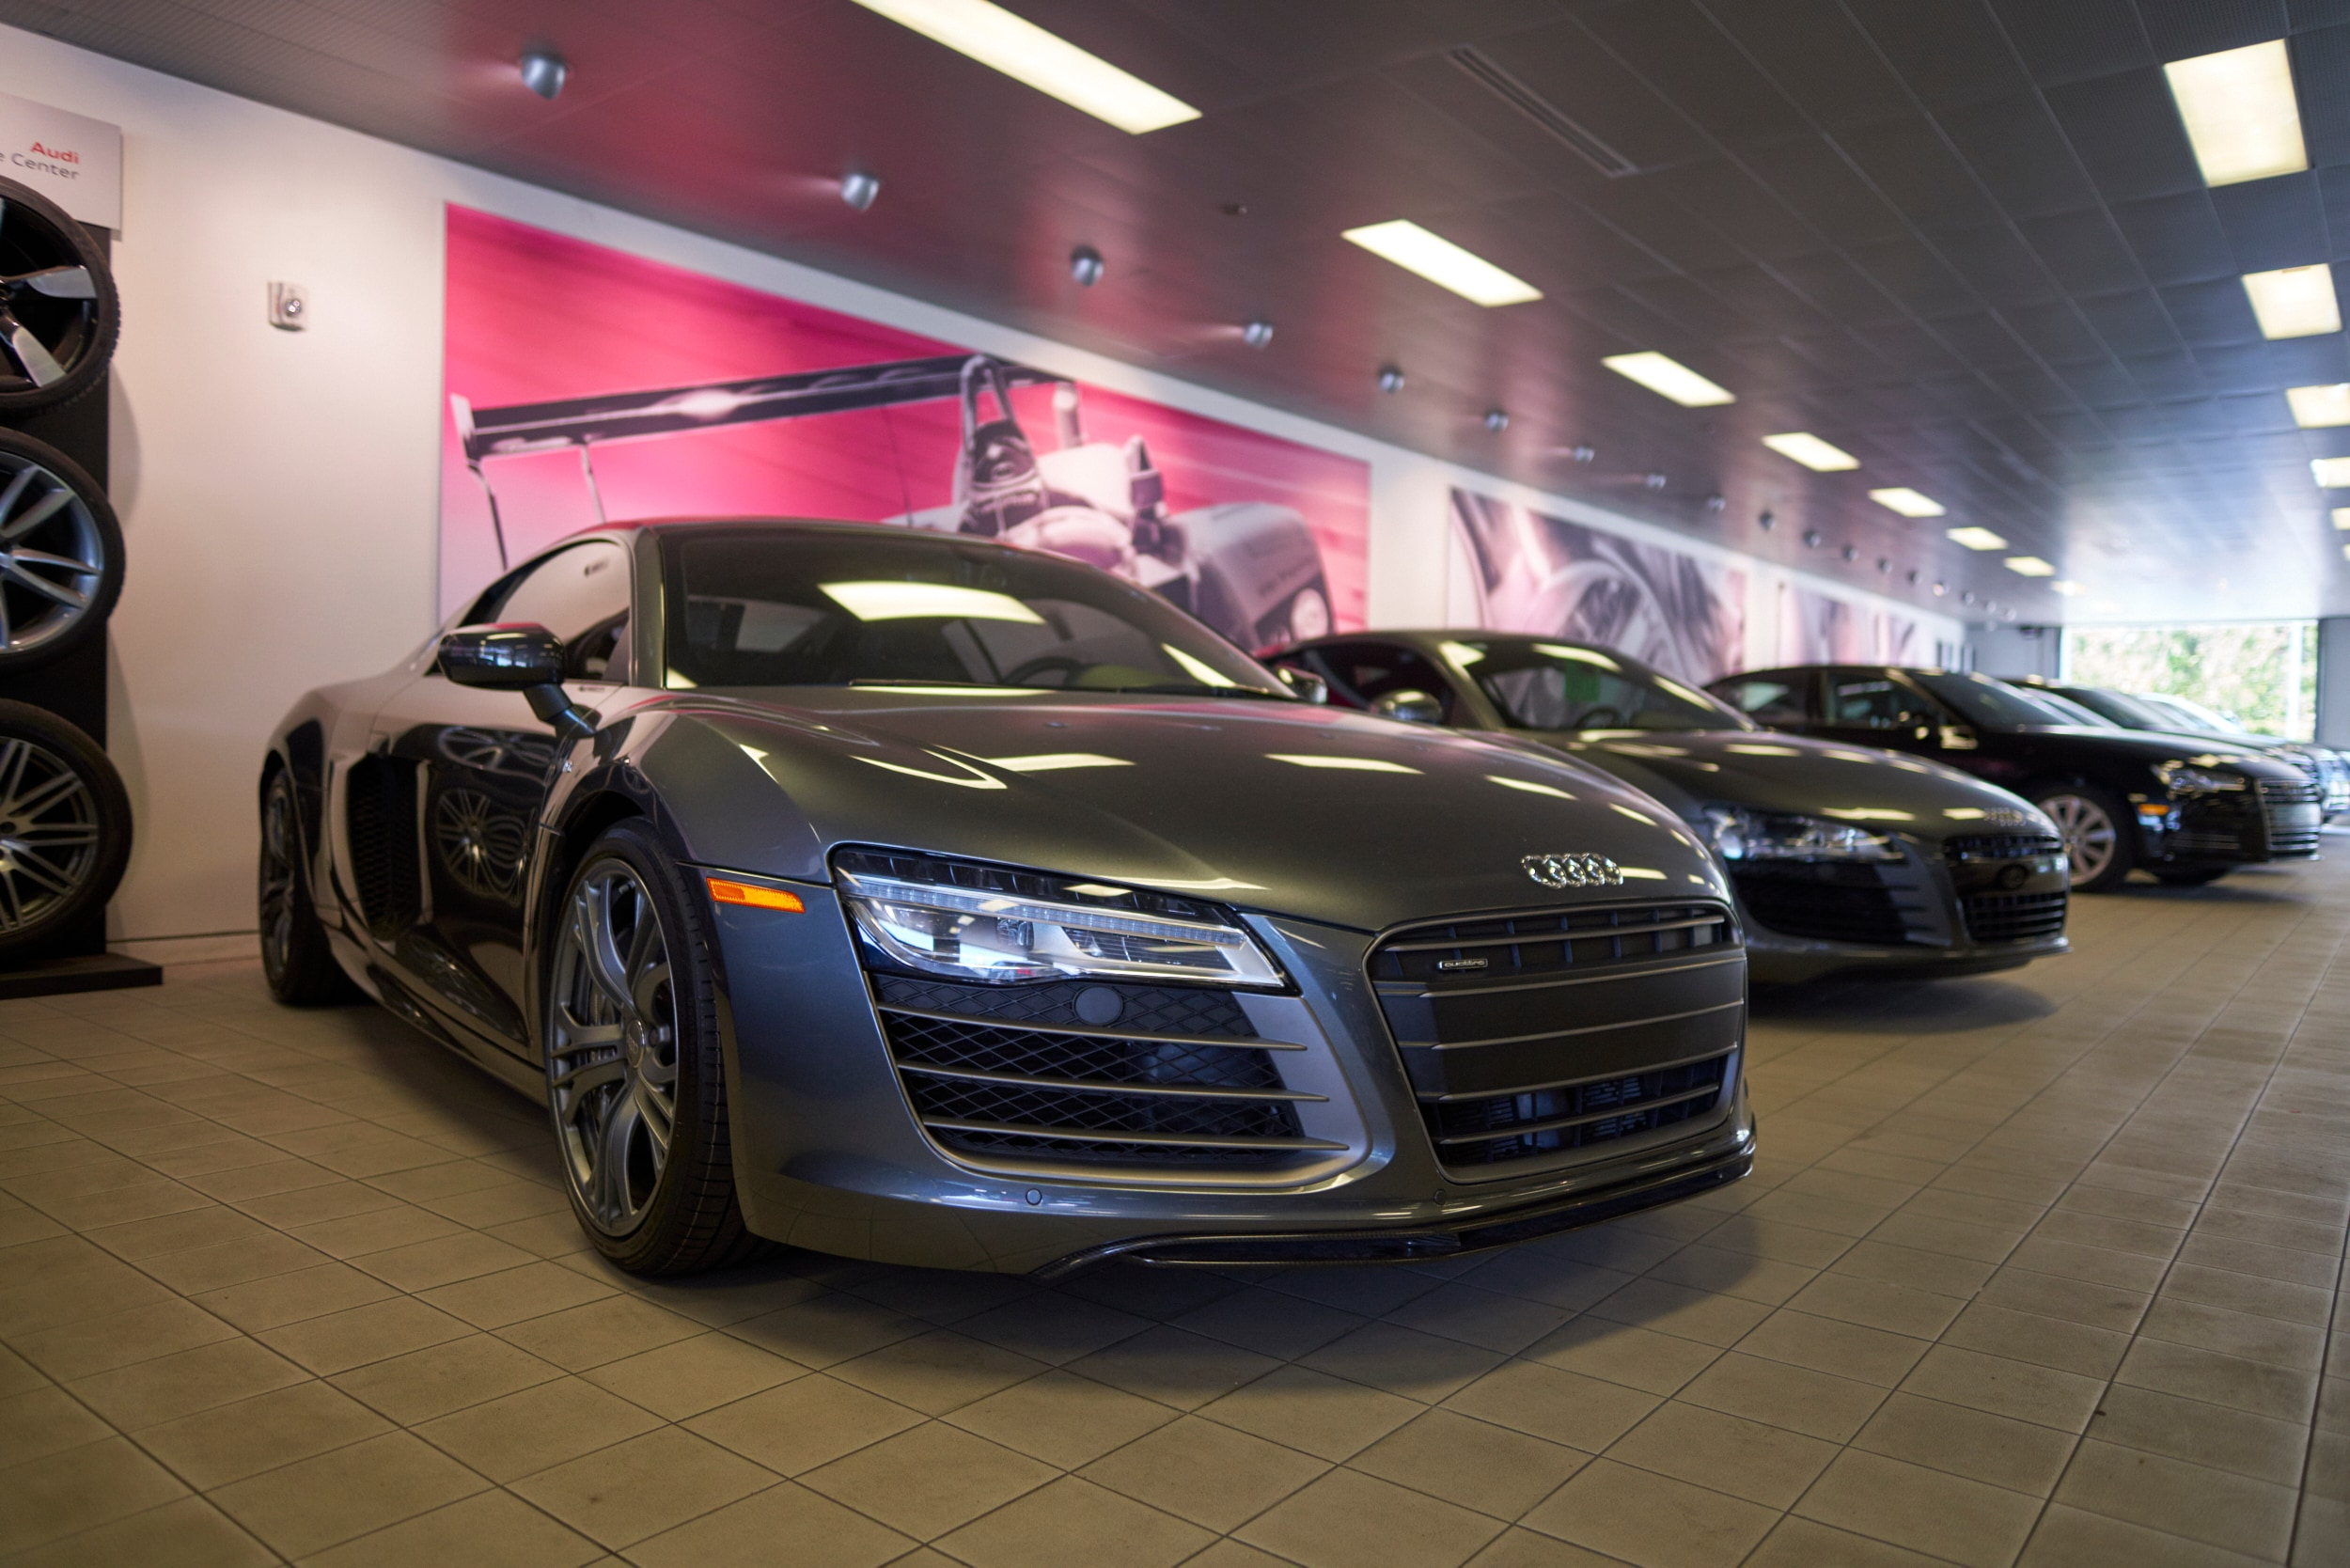 news tool dealer cruise odis control not working audi